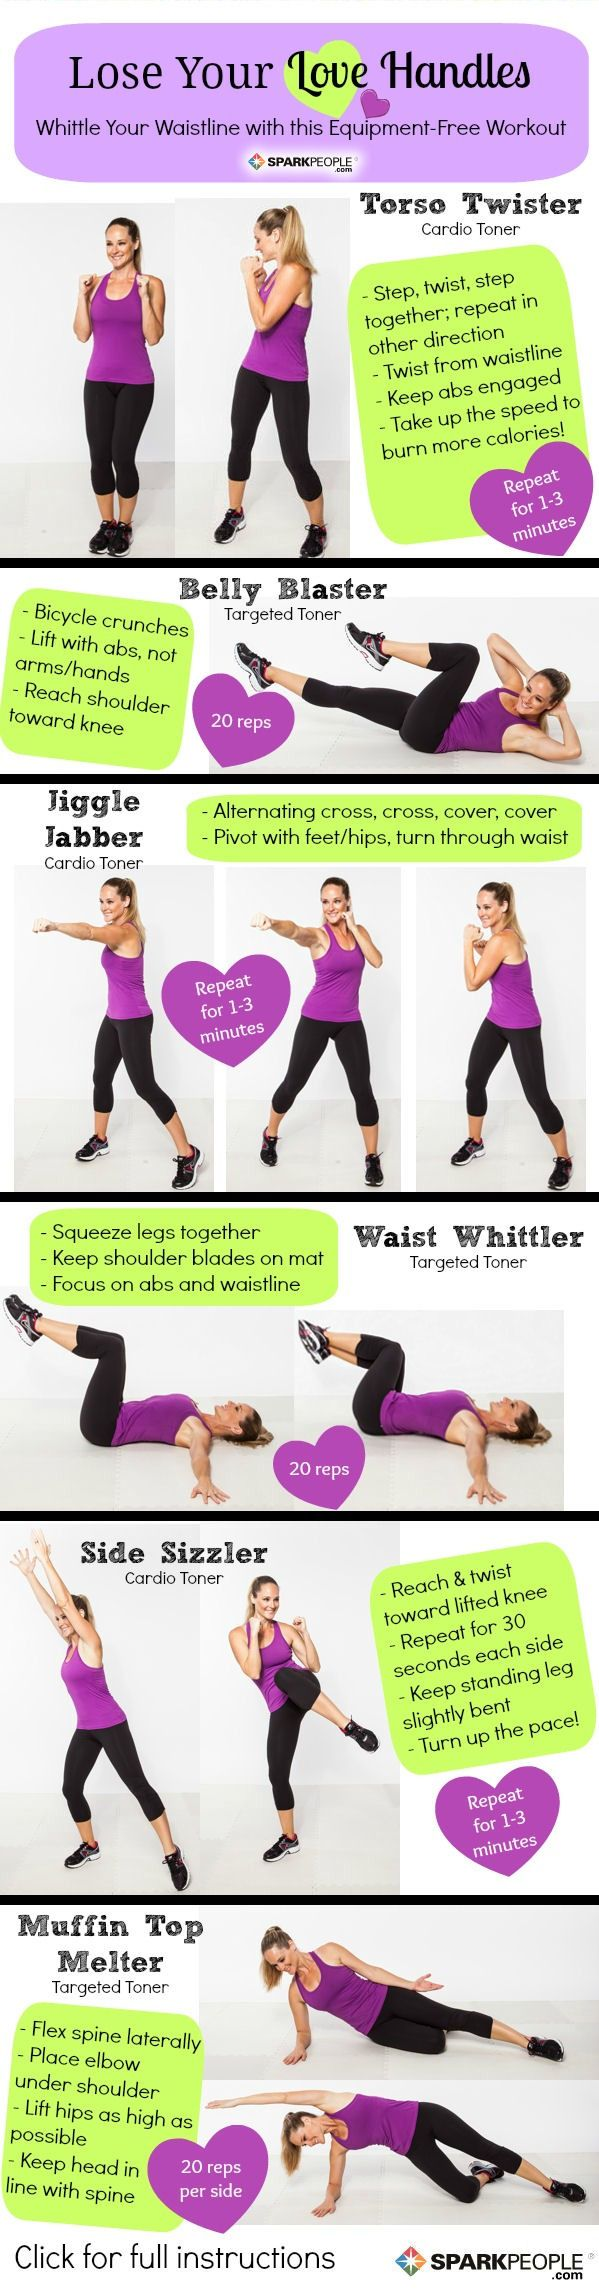 6 Moves to Melt Your Muffin Top